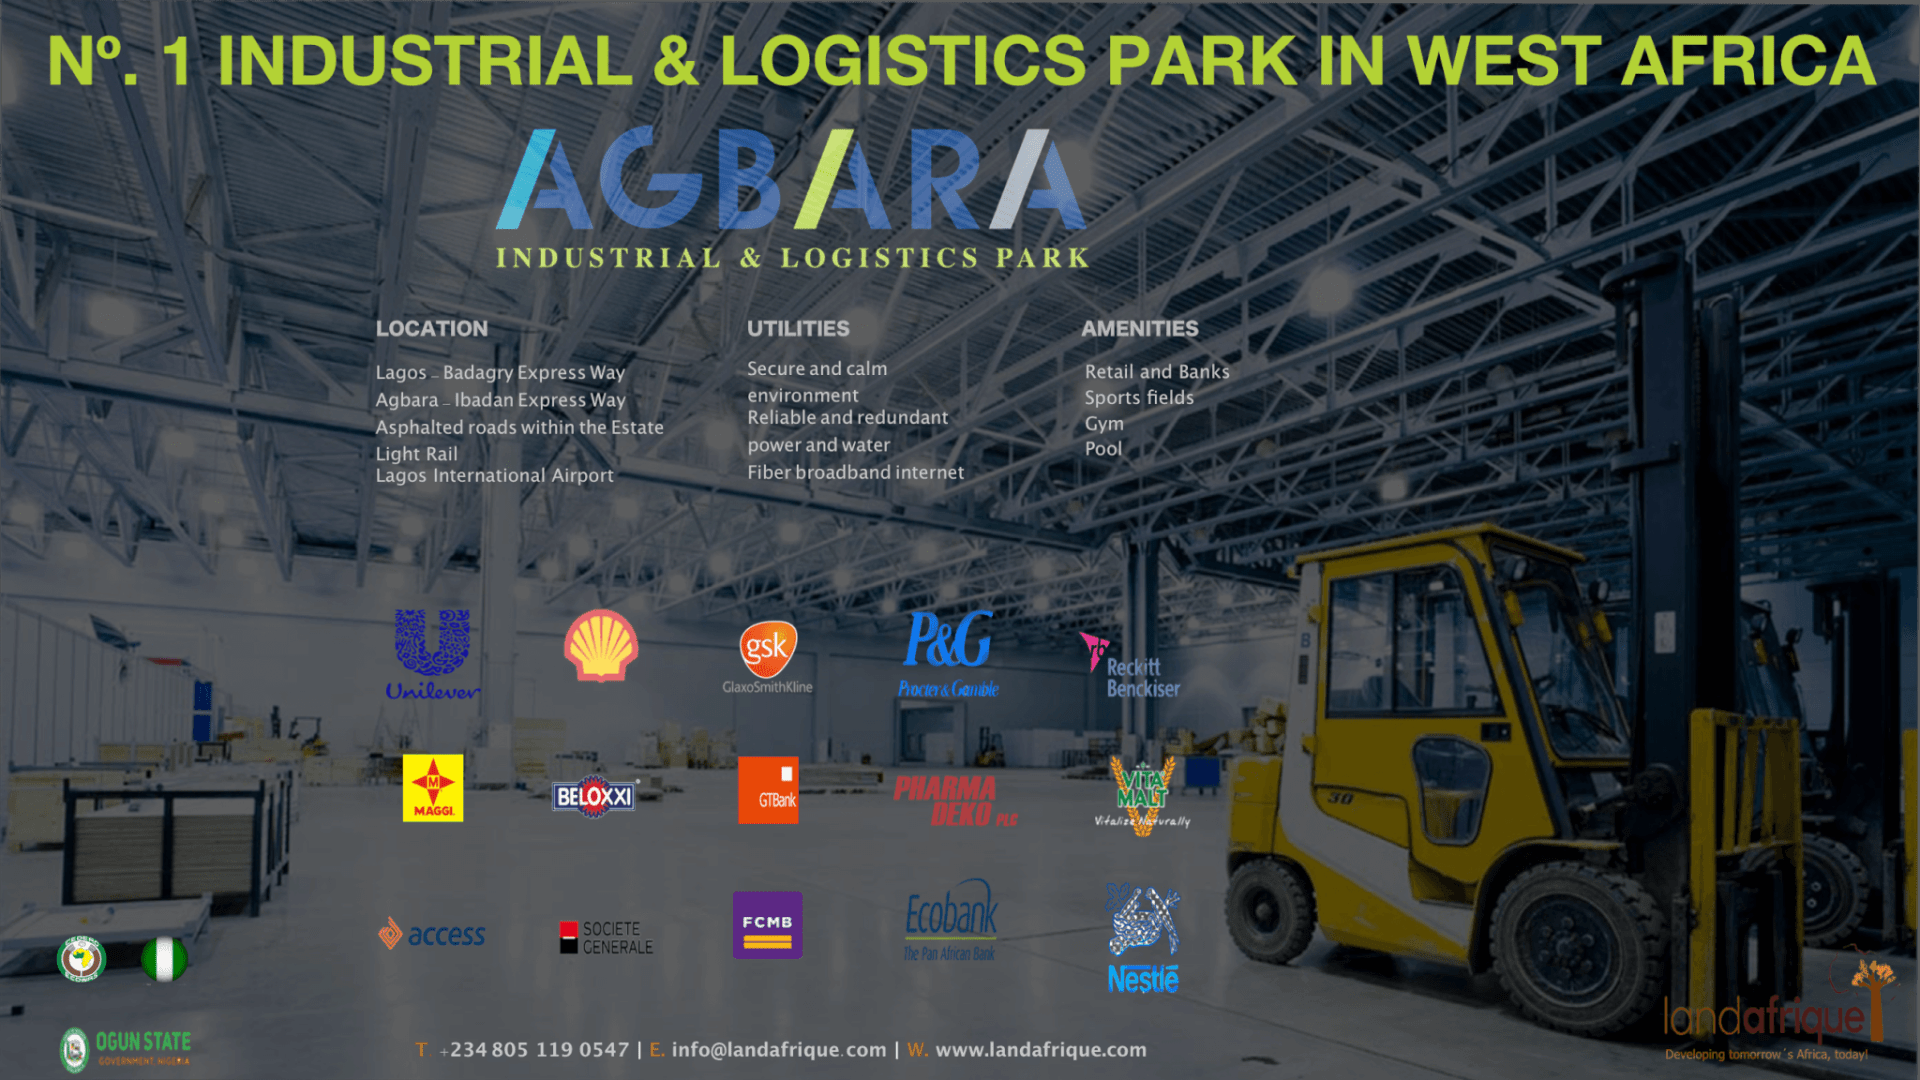 agbara industrial park in ogun nigeria warehouse logistics unilever nestle Procter Shell  free zone enclave west park lekki lagos